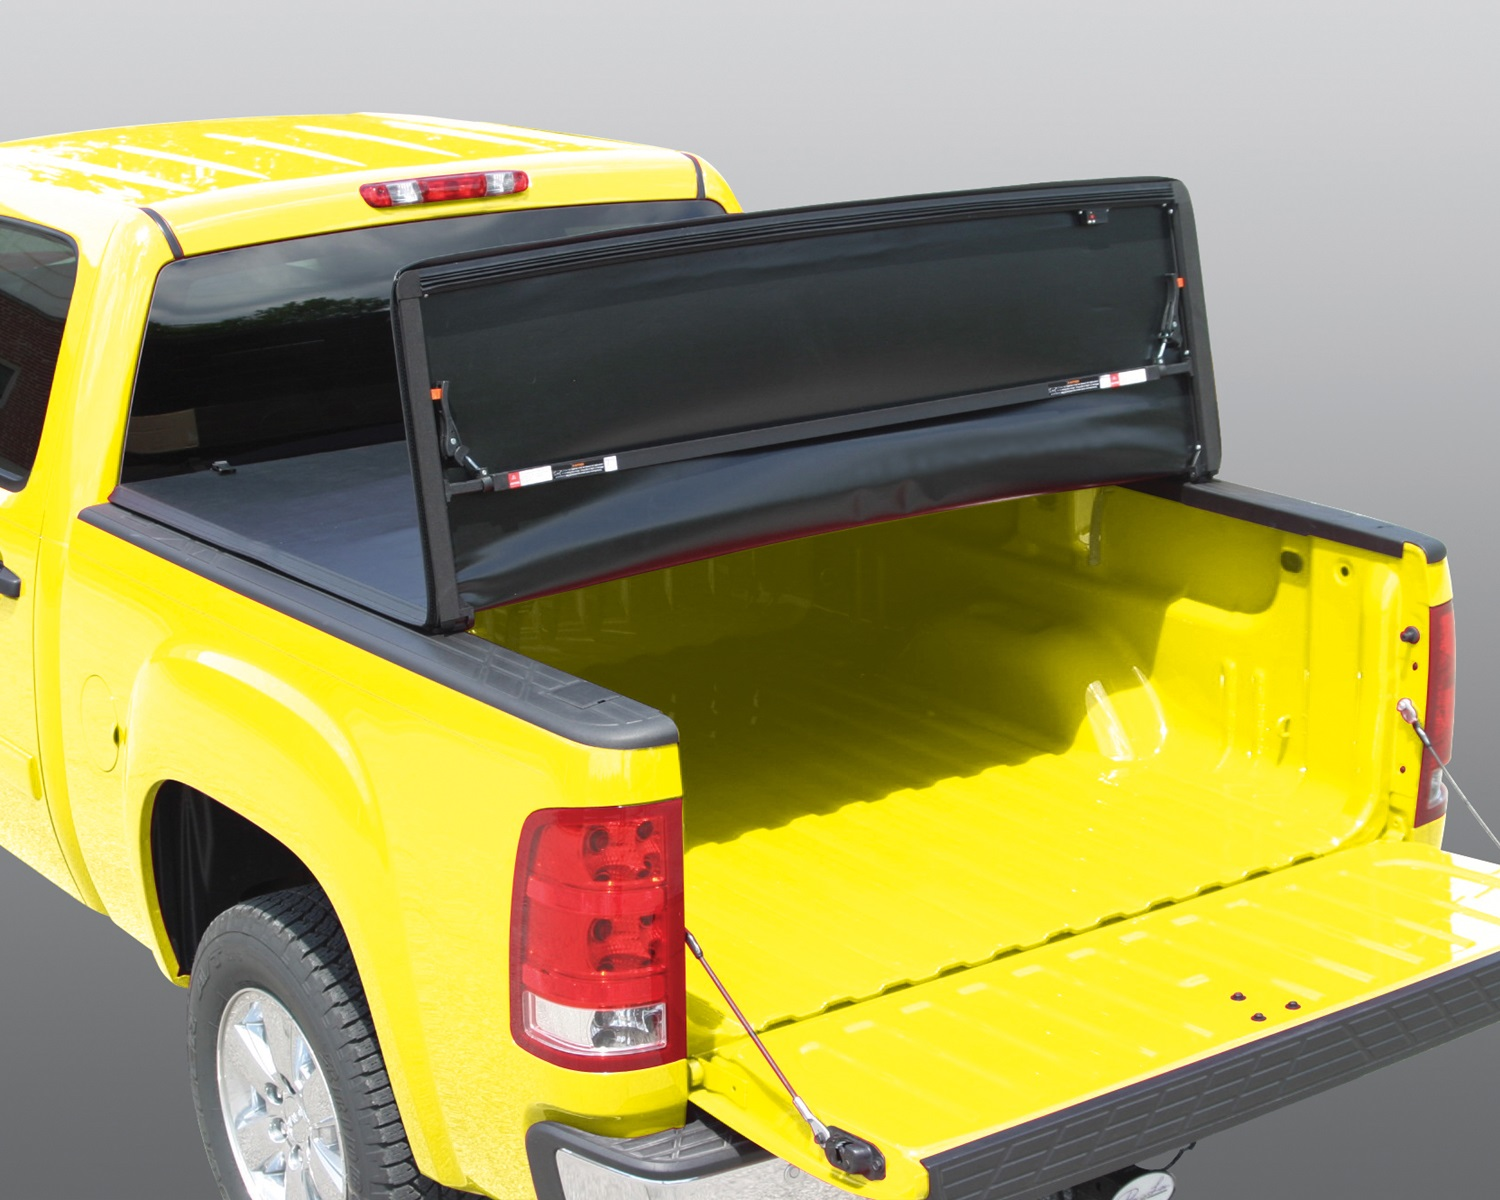 Rugged Liner E3-T605 E-Series Vinyl Folding Rugged Cover Fits 05-15 Tacoma